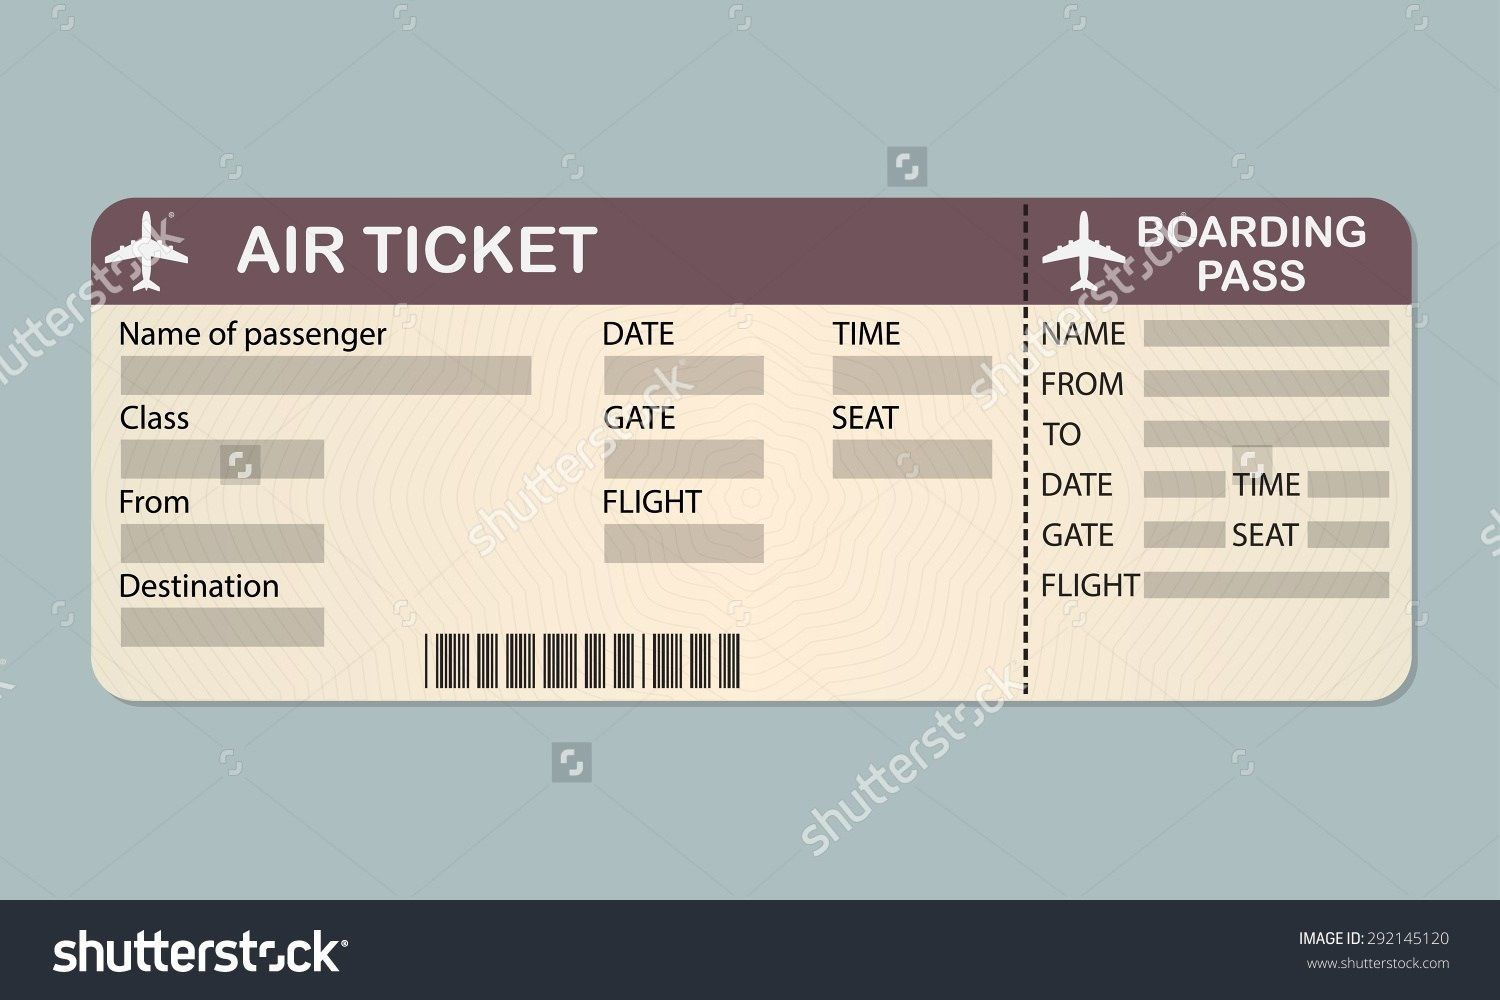 Airline Boarding Pass Template Sample Customer Service Resume Consolidator Wikipedia American Airli Boarding Pass Template Plane Tickets Ticket Design Template